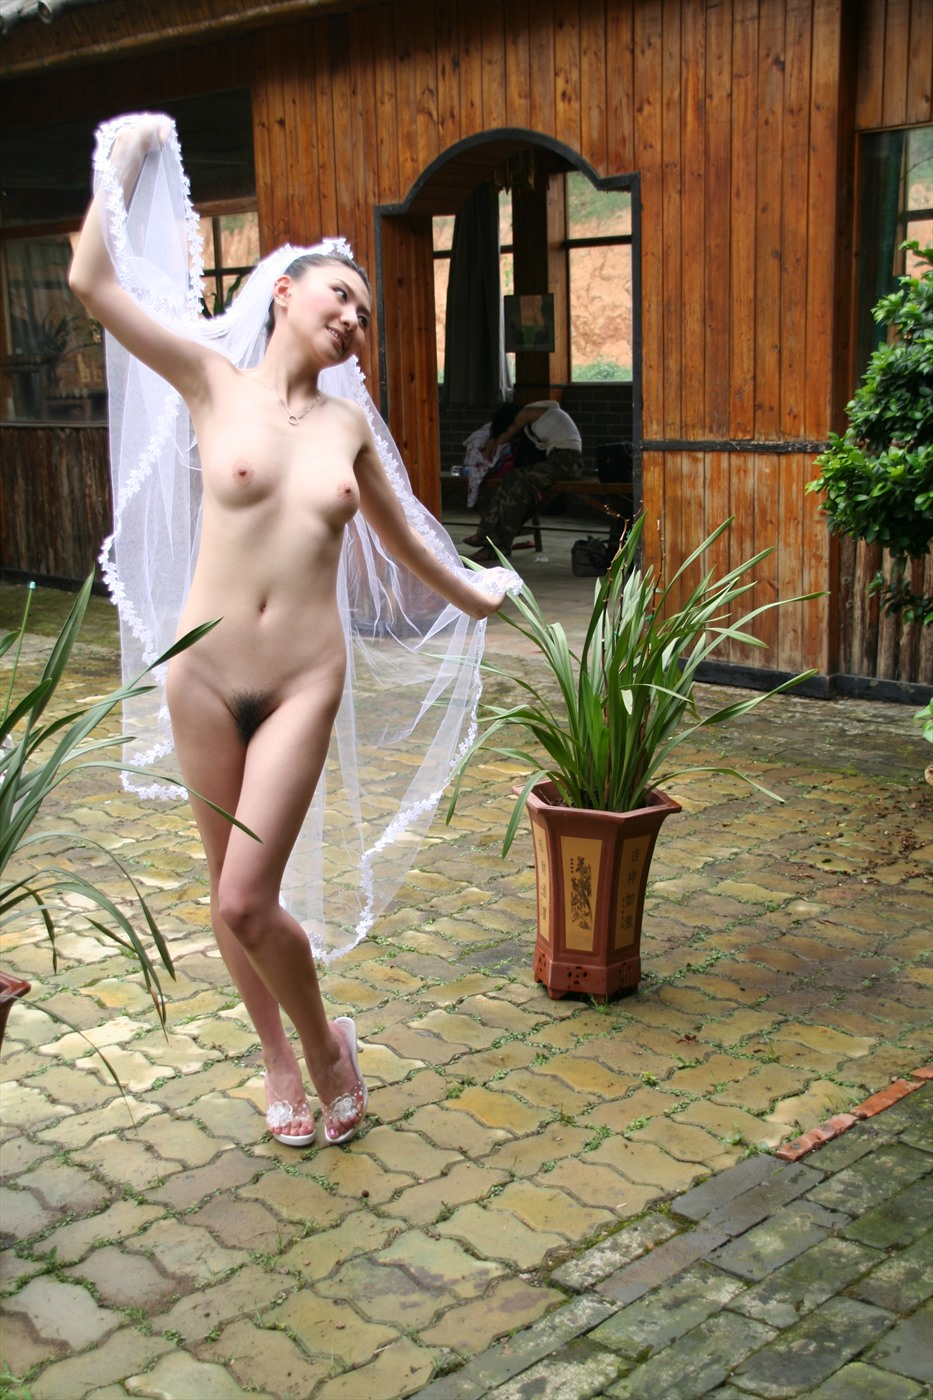 Perfect world nude gallery exposed image